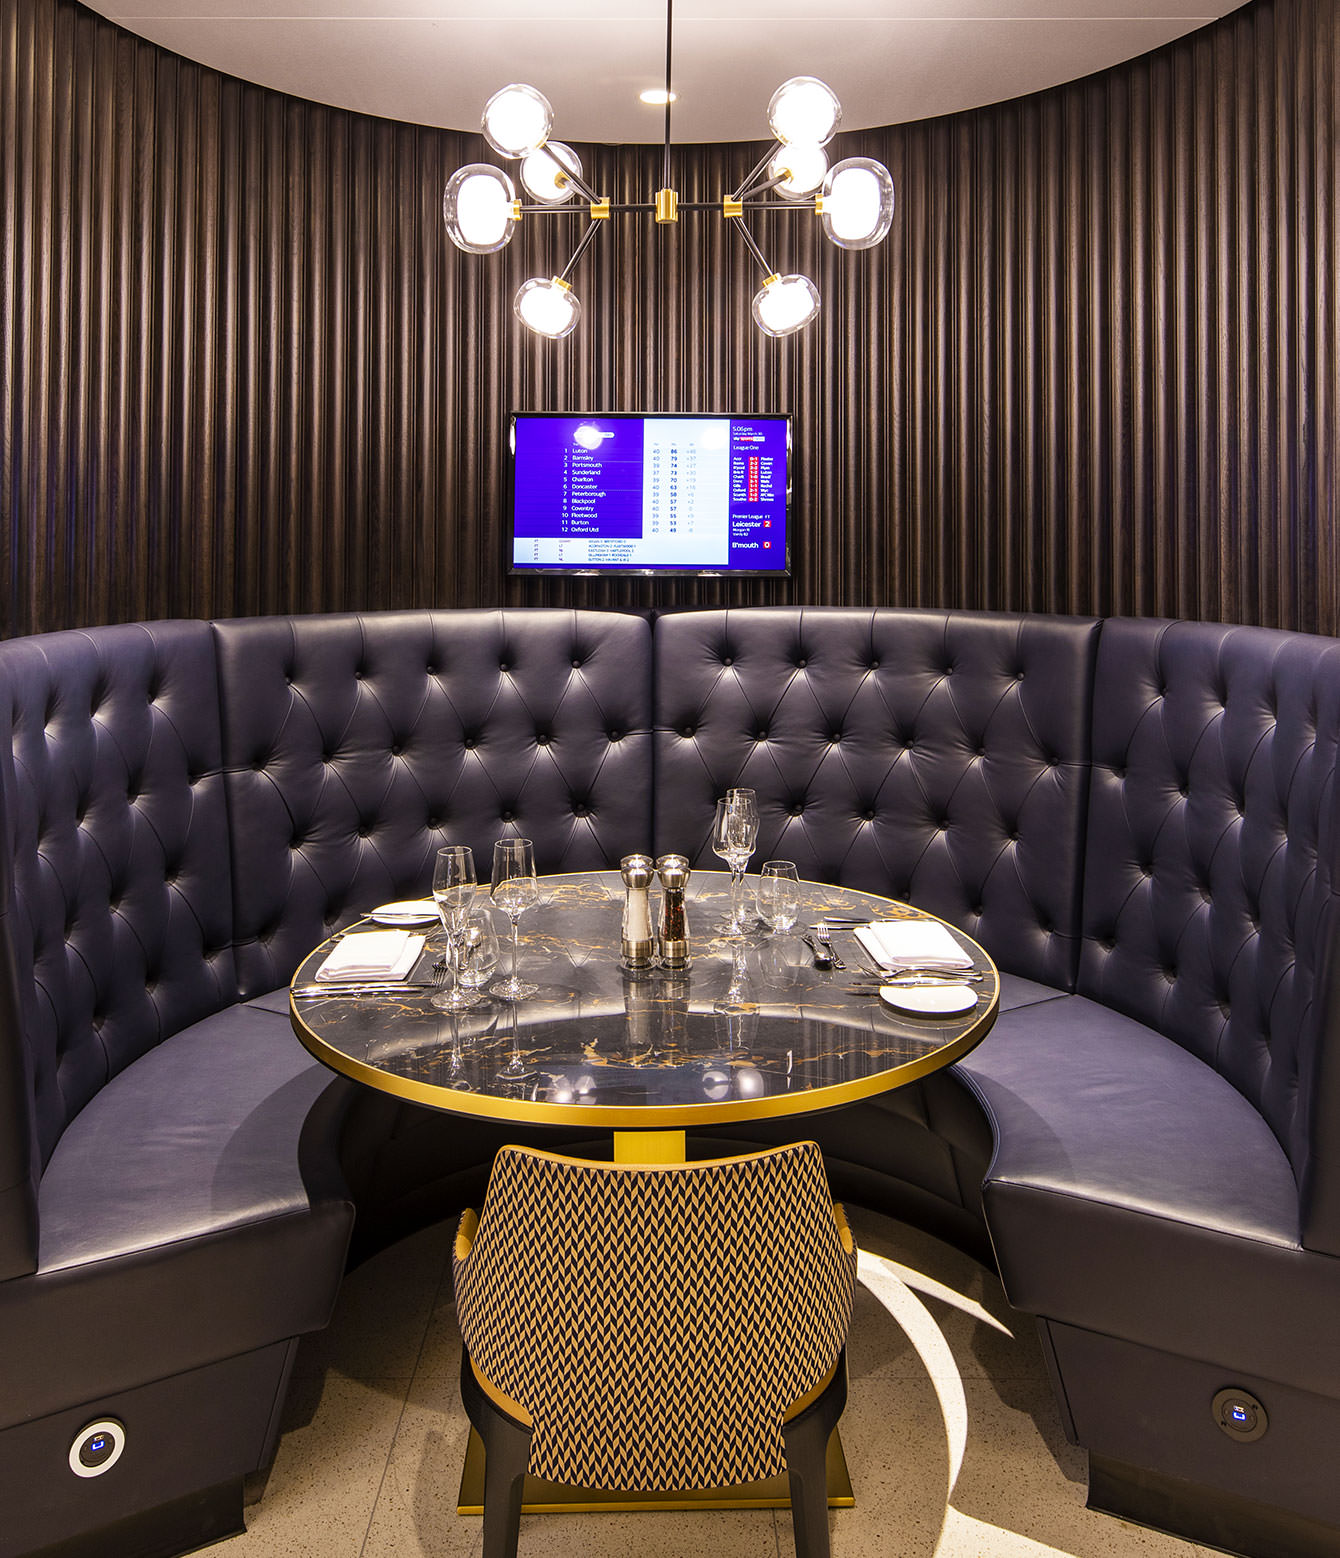 Tottenham FC leather booth seating upholstery by Margan Ltd